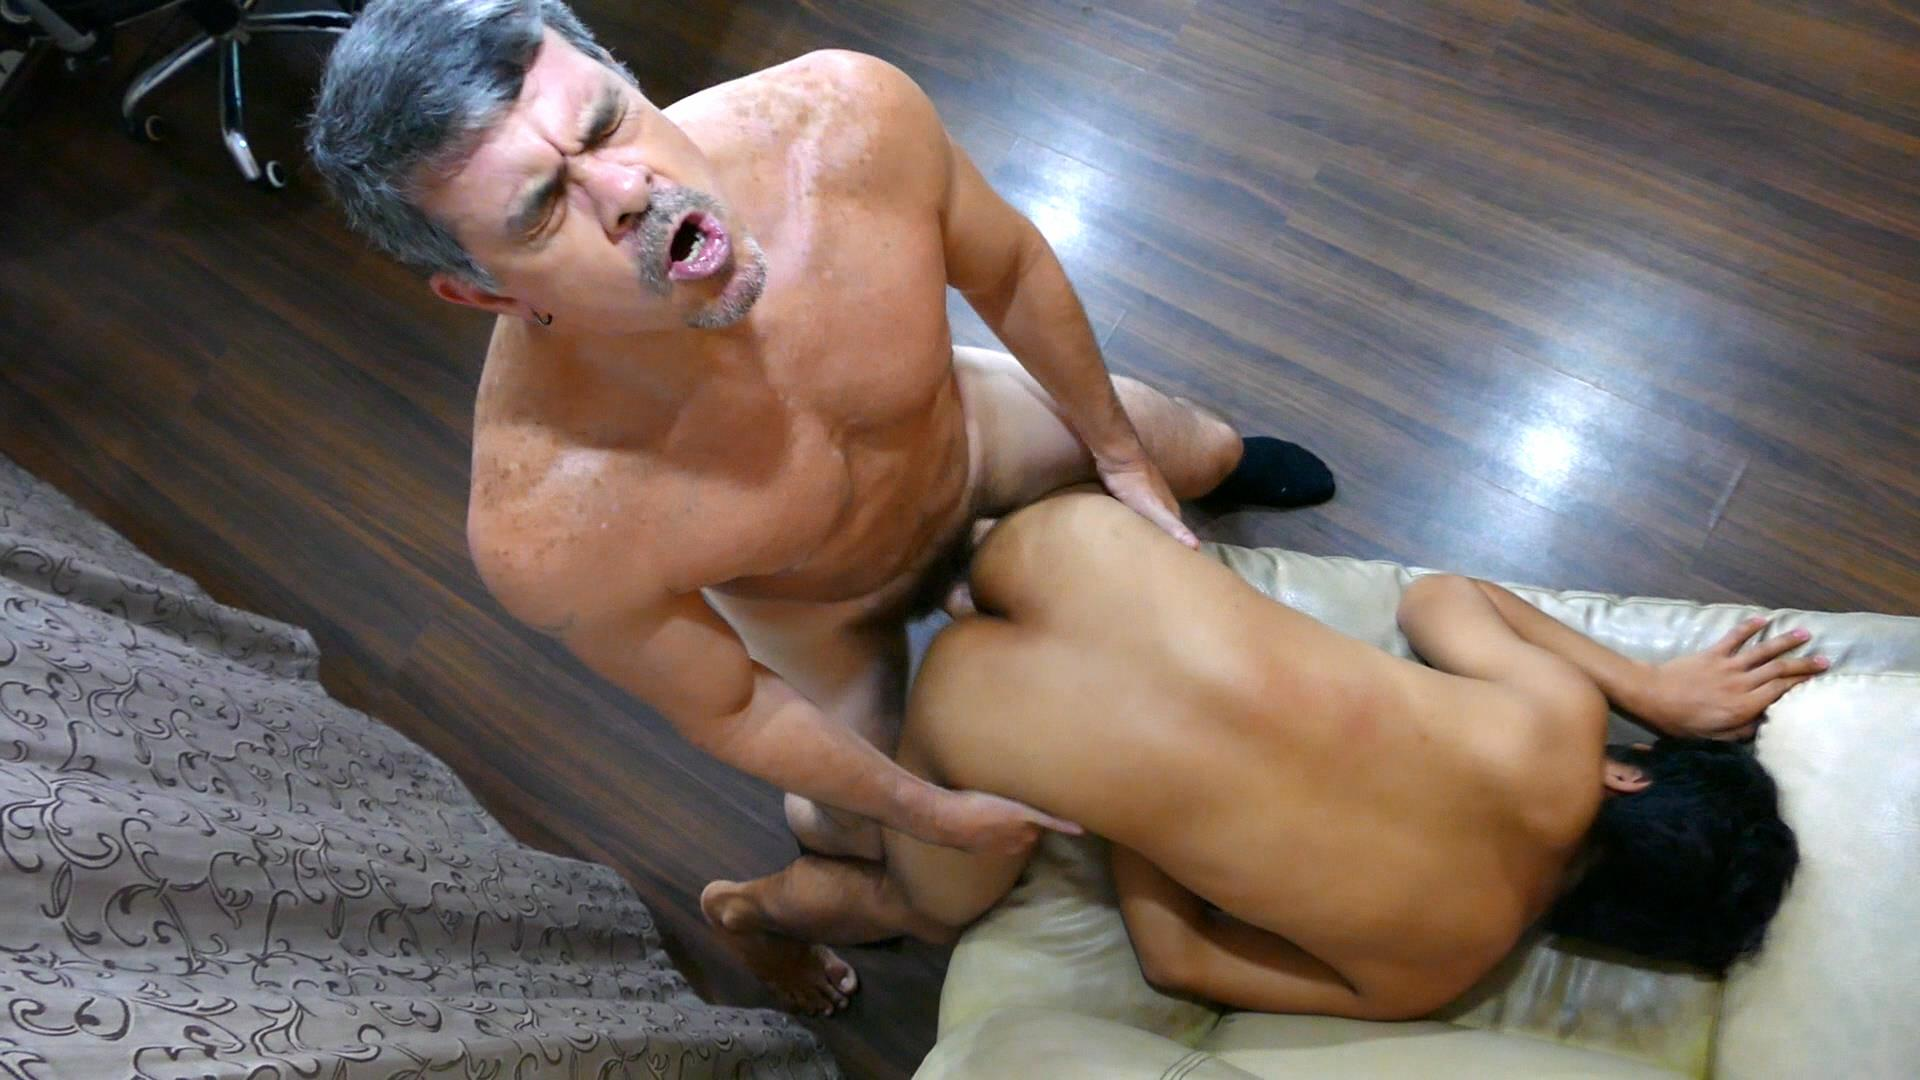 Daddys Asians Asian Twink Gets Barebacked By Daddy 24 Daddy Breeds An Asian Boy Ass During A Job Interview